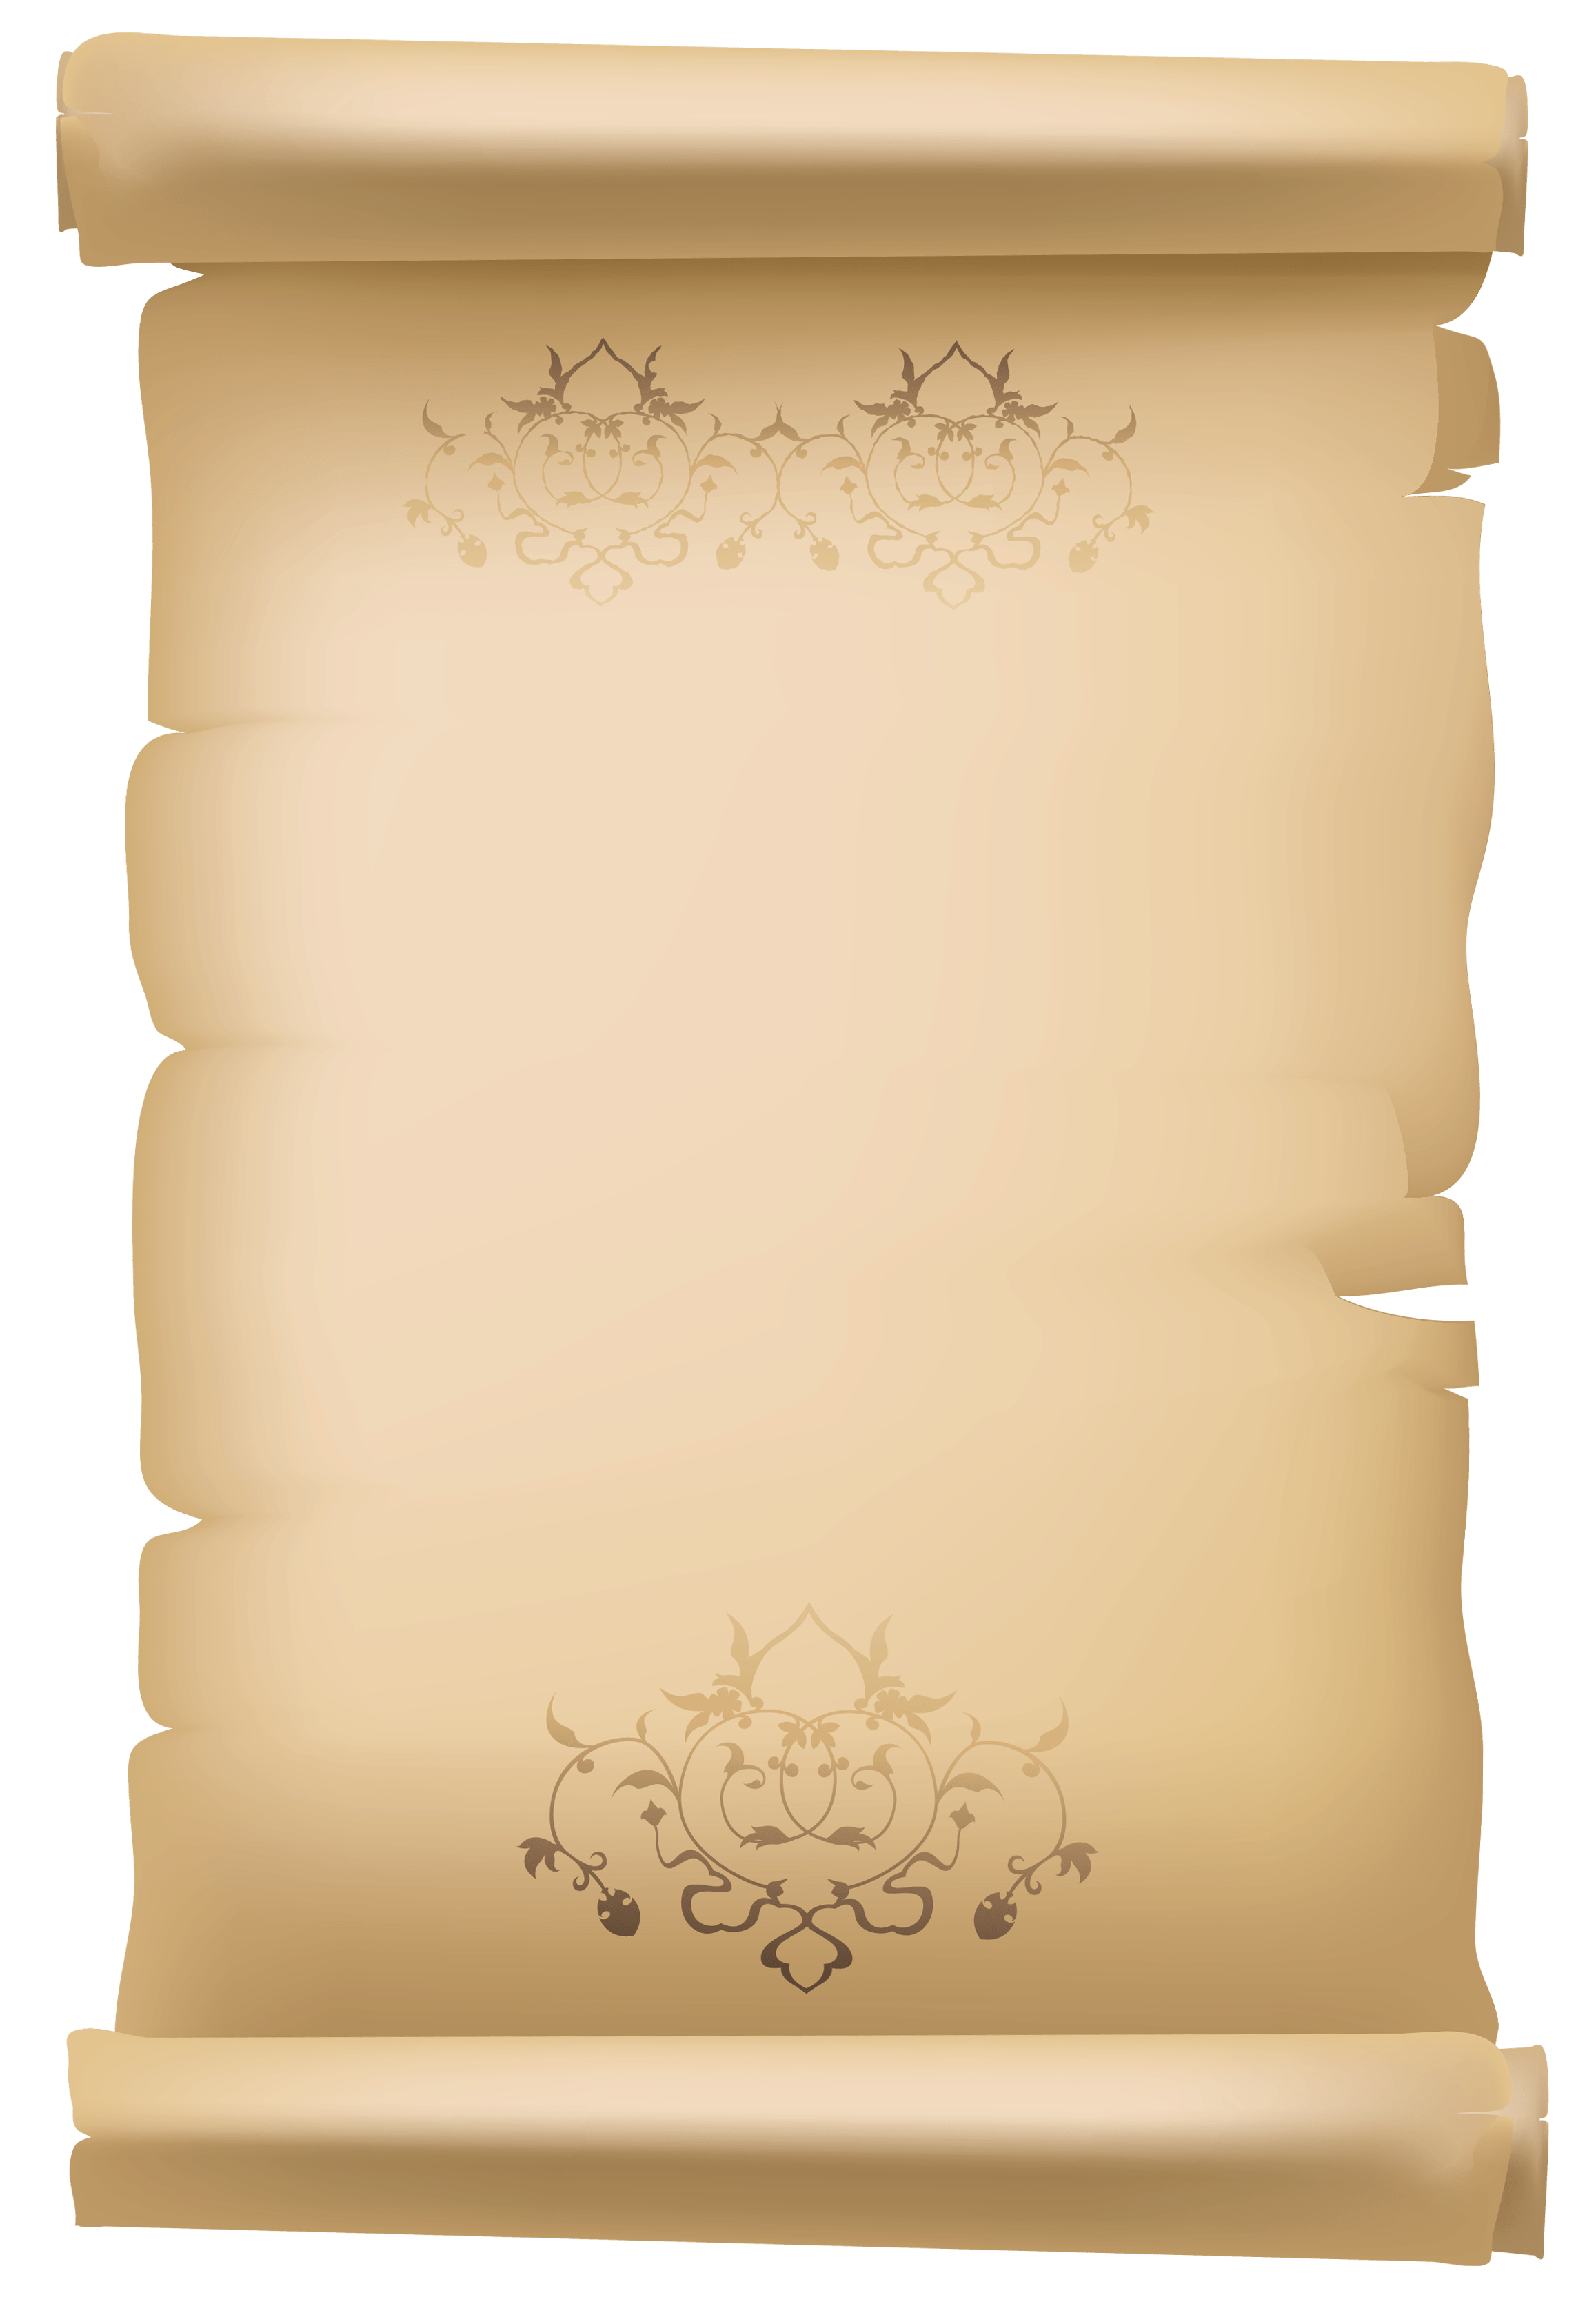 Announcement scroll clipart.